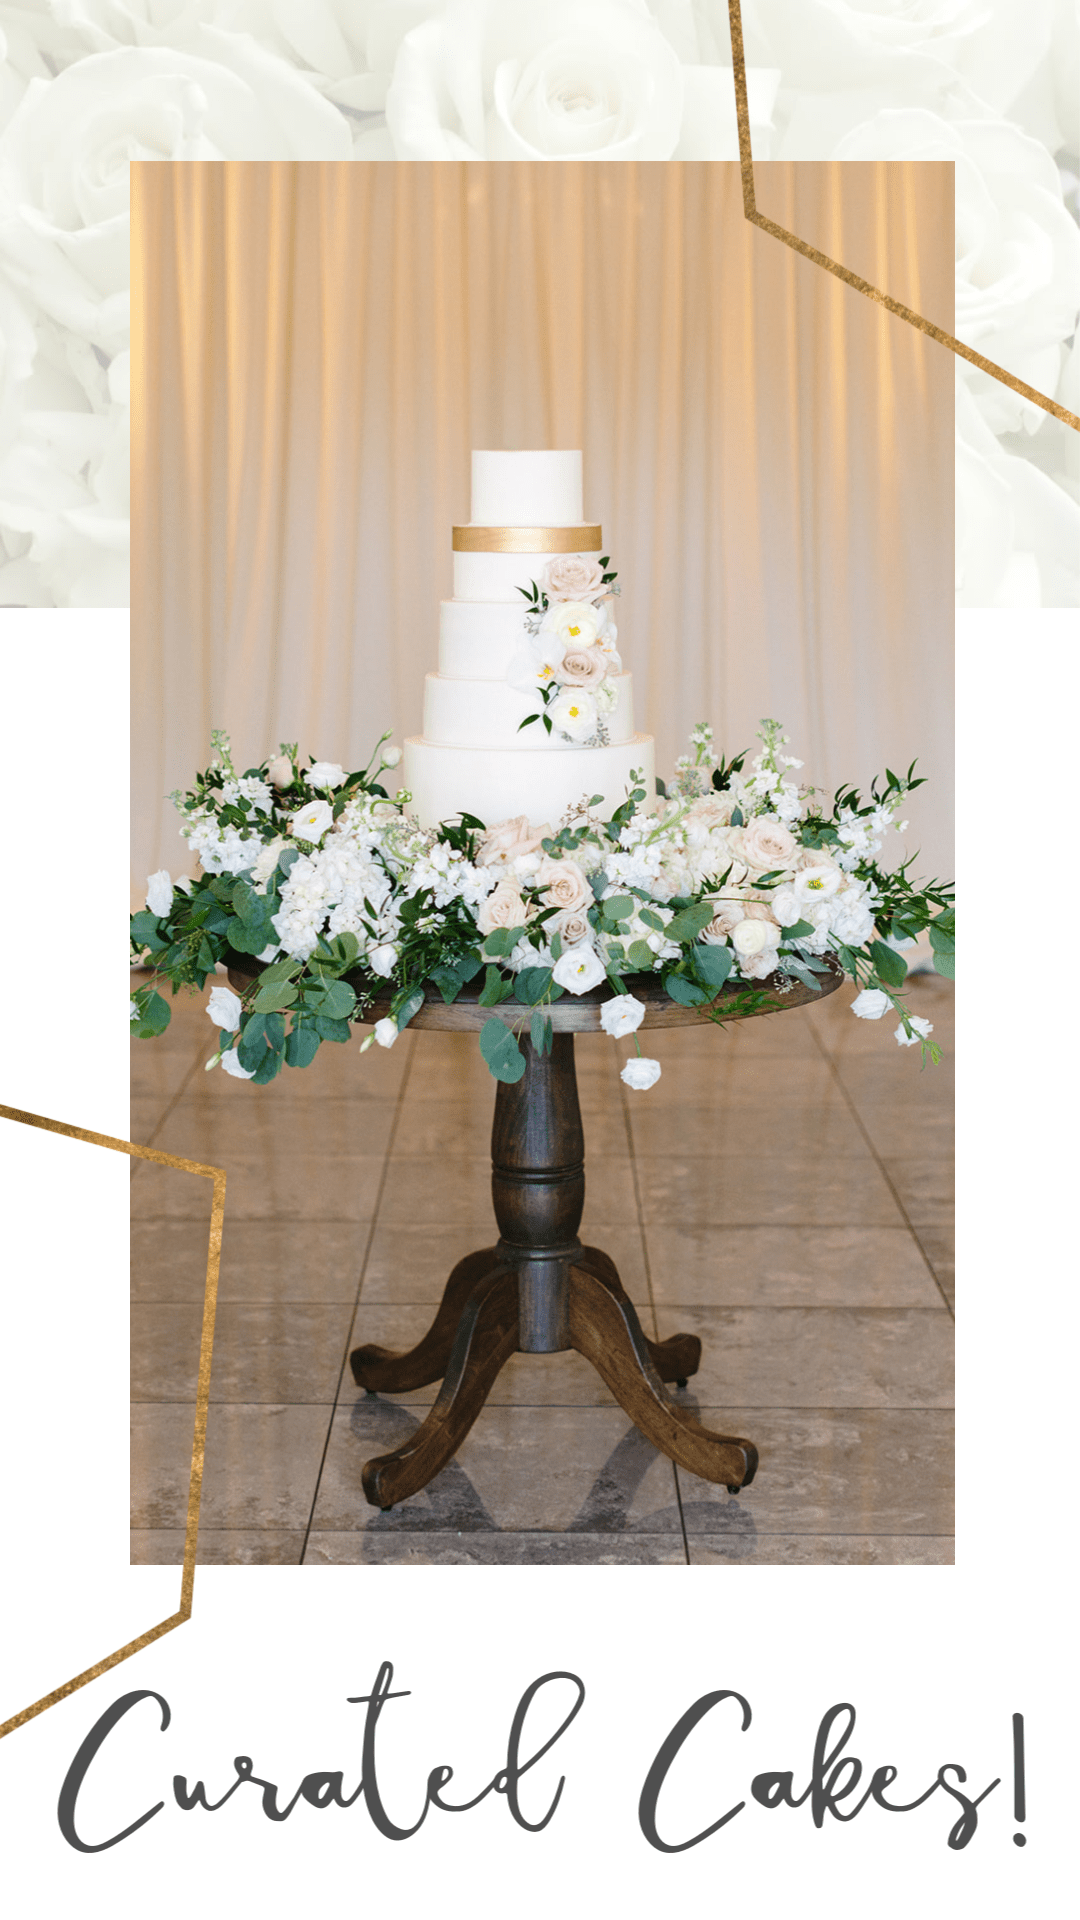 White Wedding Cake Vignette with Fresh Floral and Gold Detailing. Displayed on RW Style's Wooden Table.